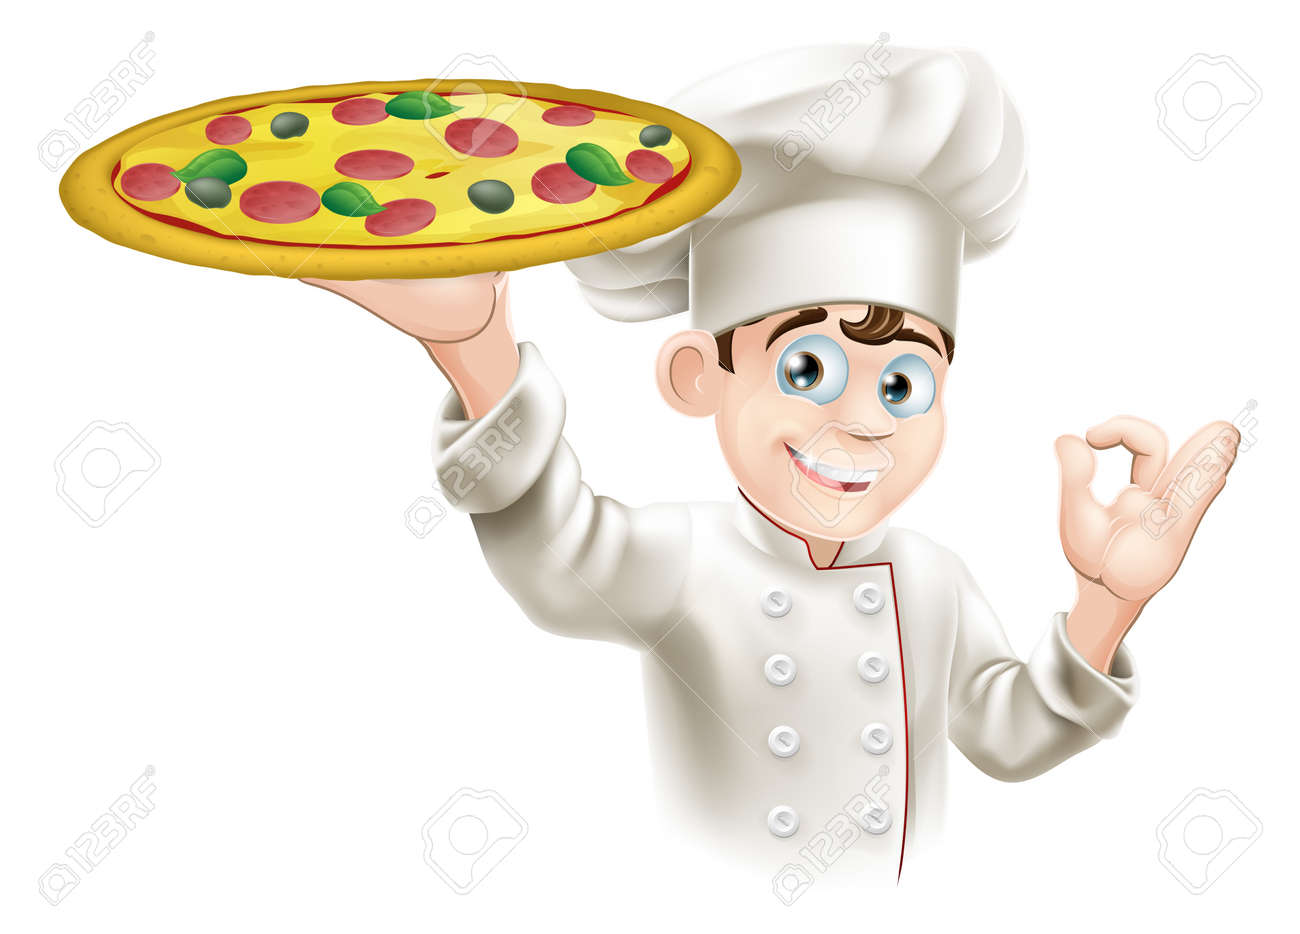 Pizza chef doing an okay sign and holding up a tasty looking pizza - 13403527